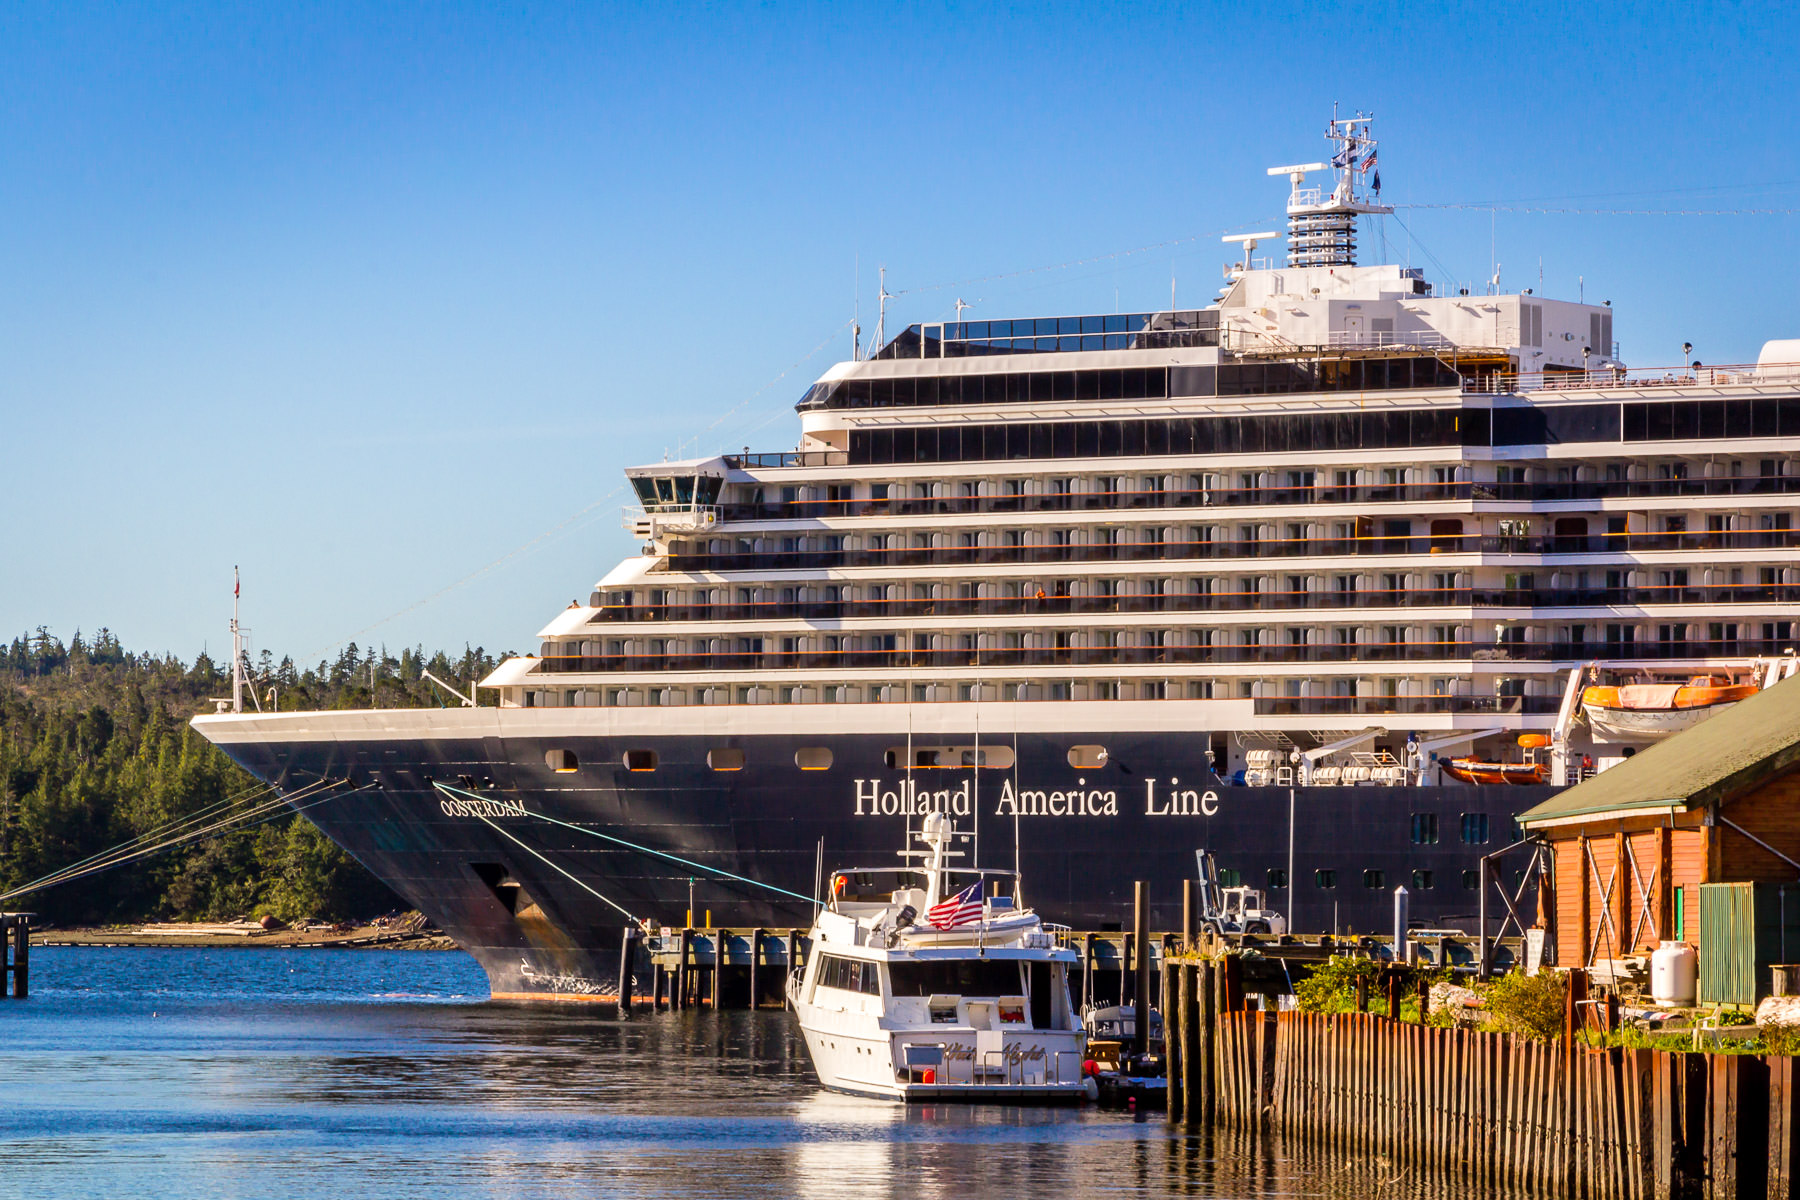 The Holland America Line's cruise ship Oosterdam, docked in Ketchikan, Alaska.